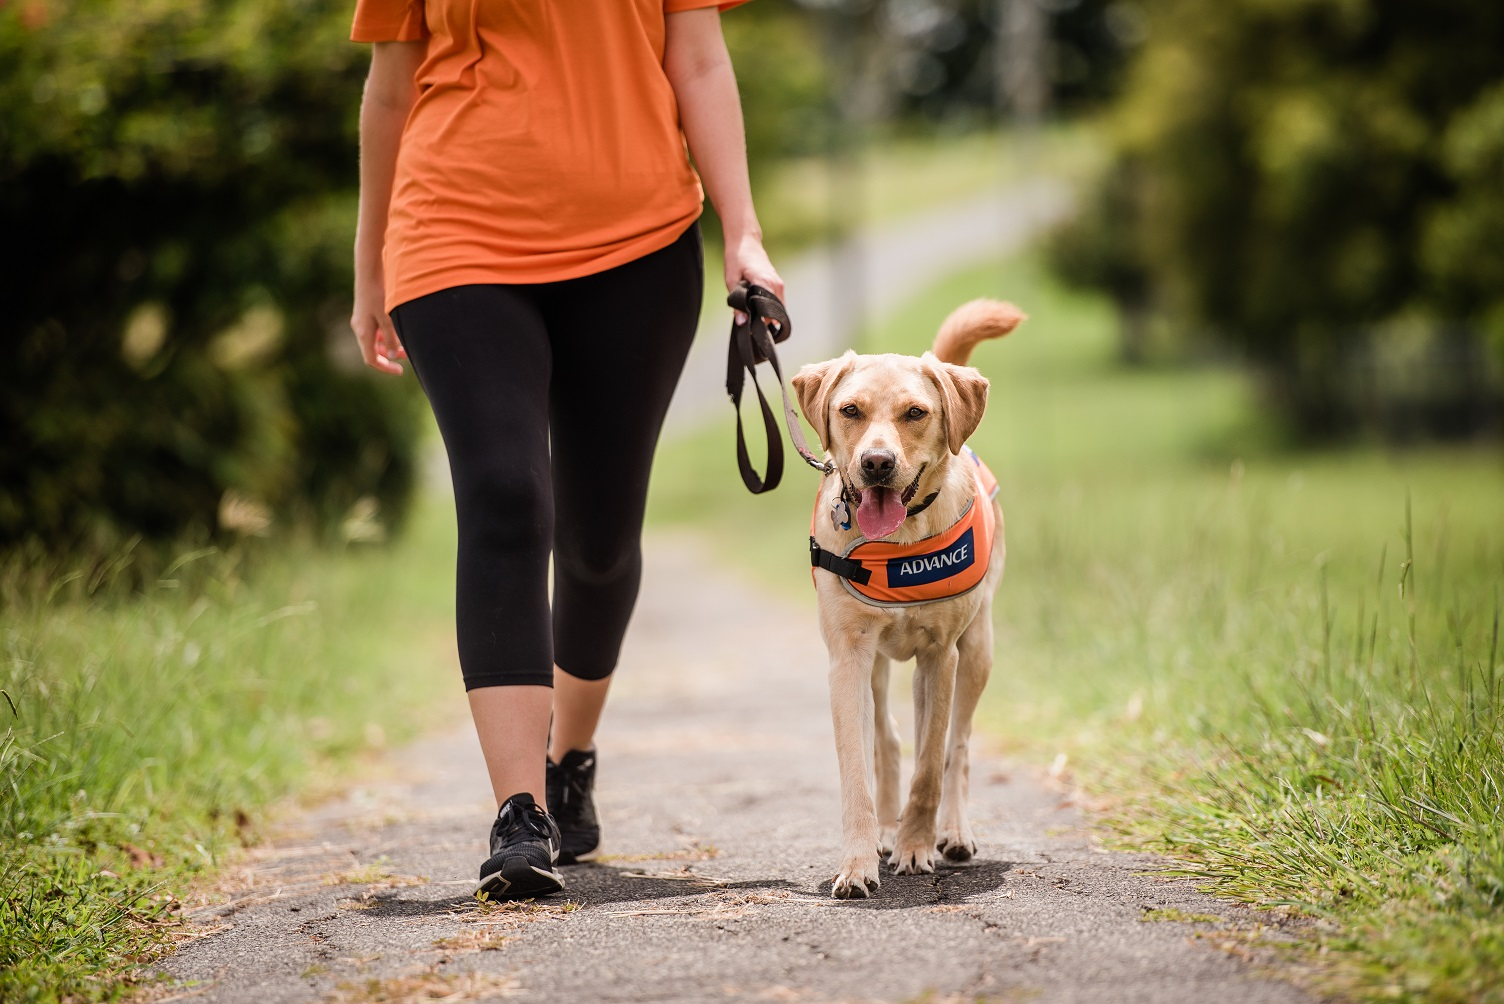 Image shows lower half of person walking with a golden Labrador Guide Dog walking by her side wearing an orange coat.